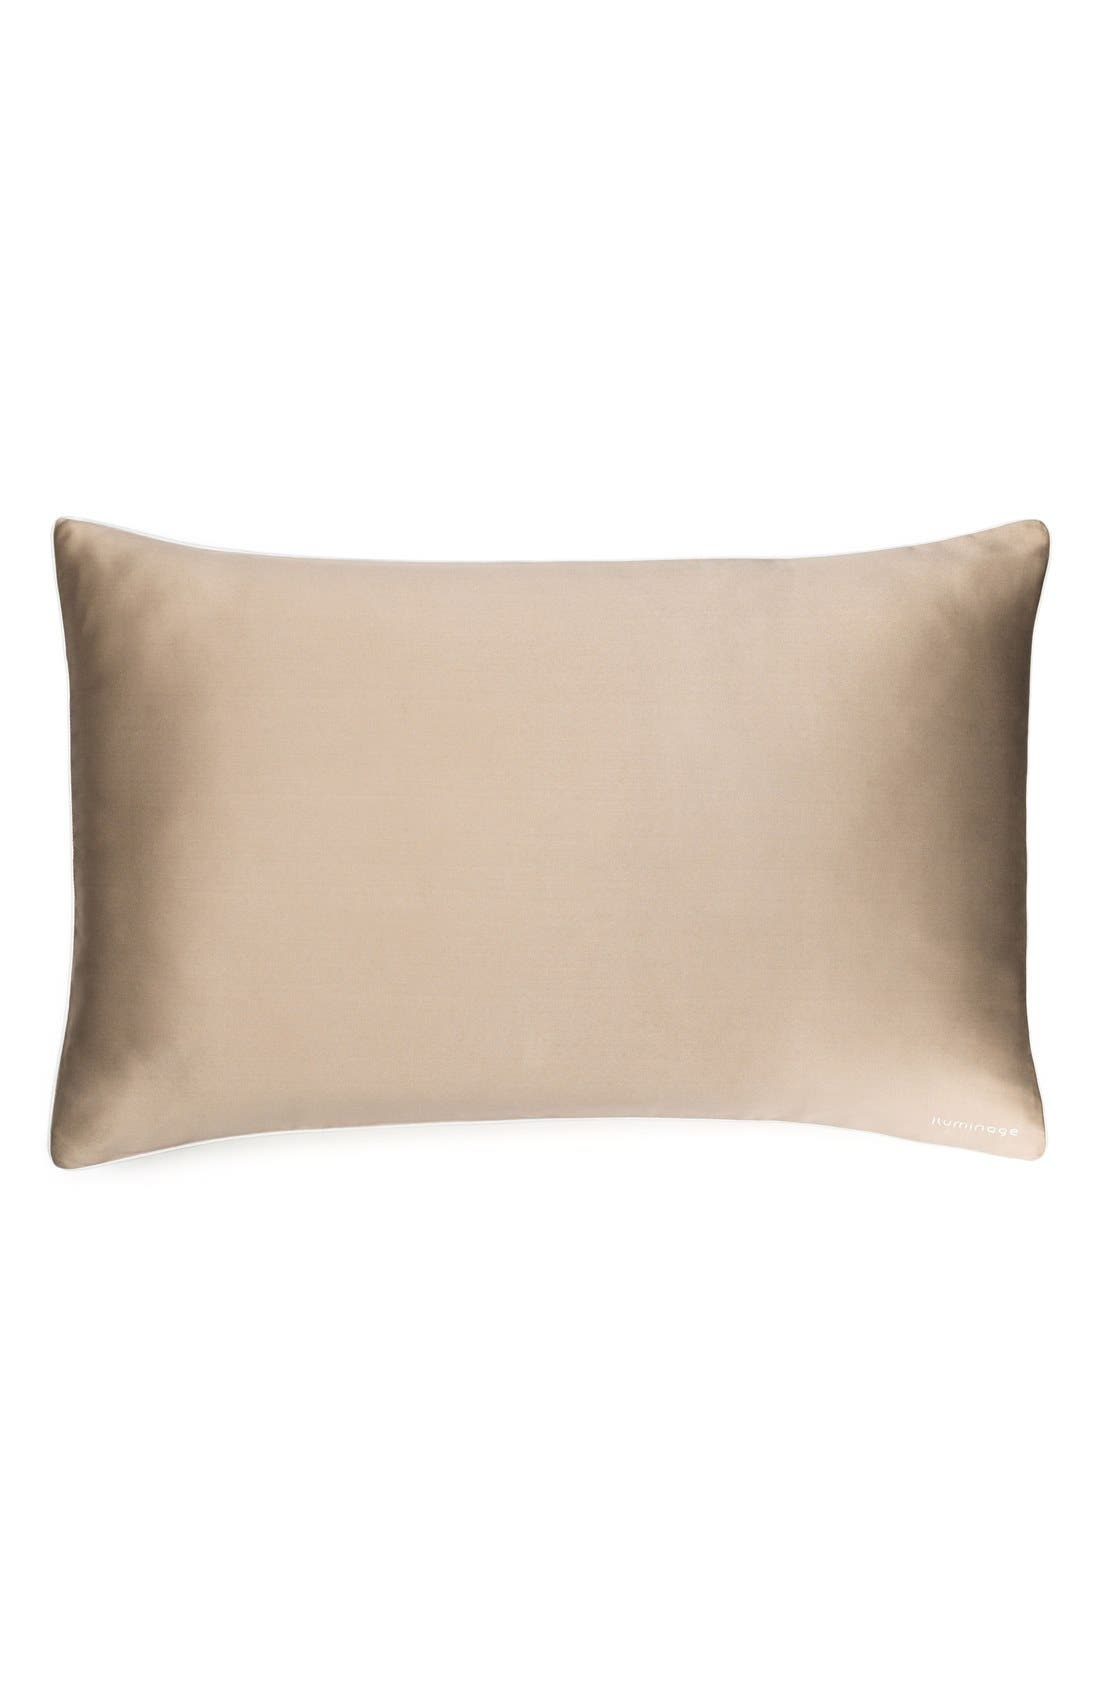 iluminage Skin Rejuvenating Pillowcases  ($120 Value)